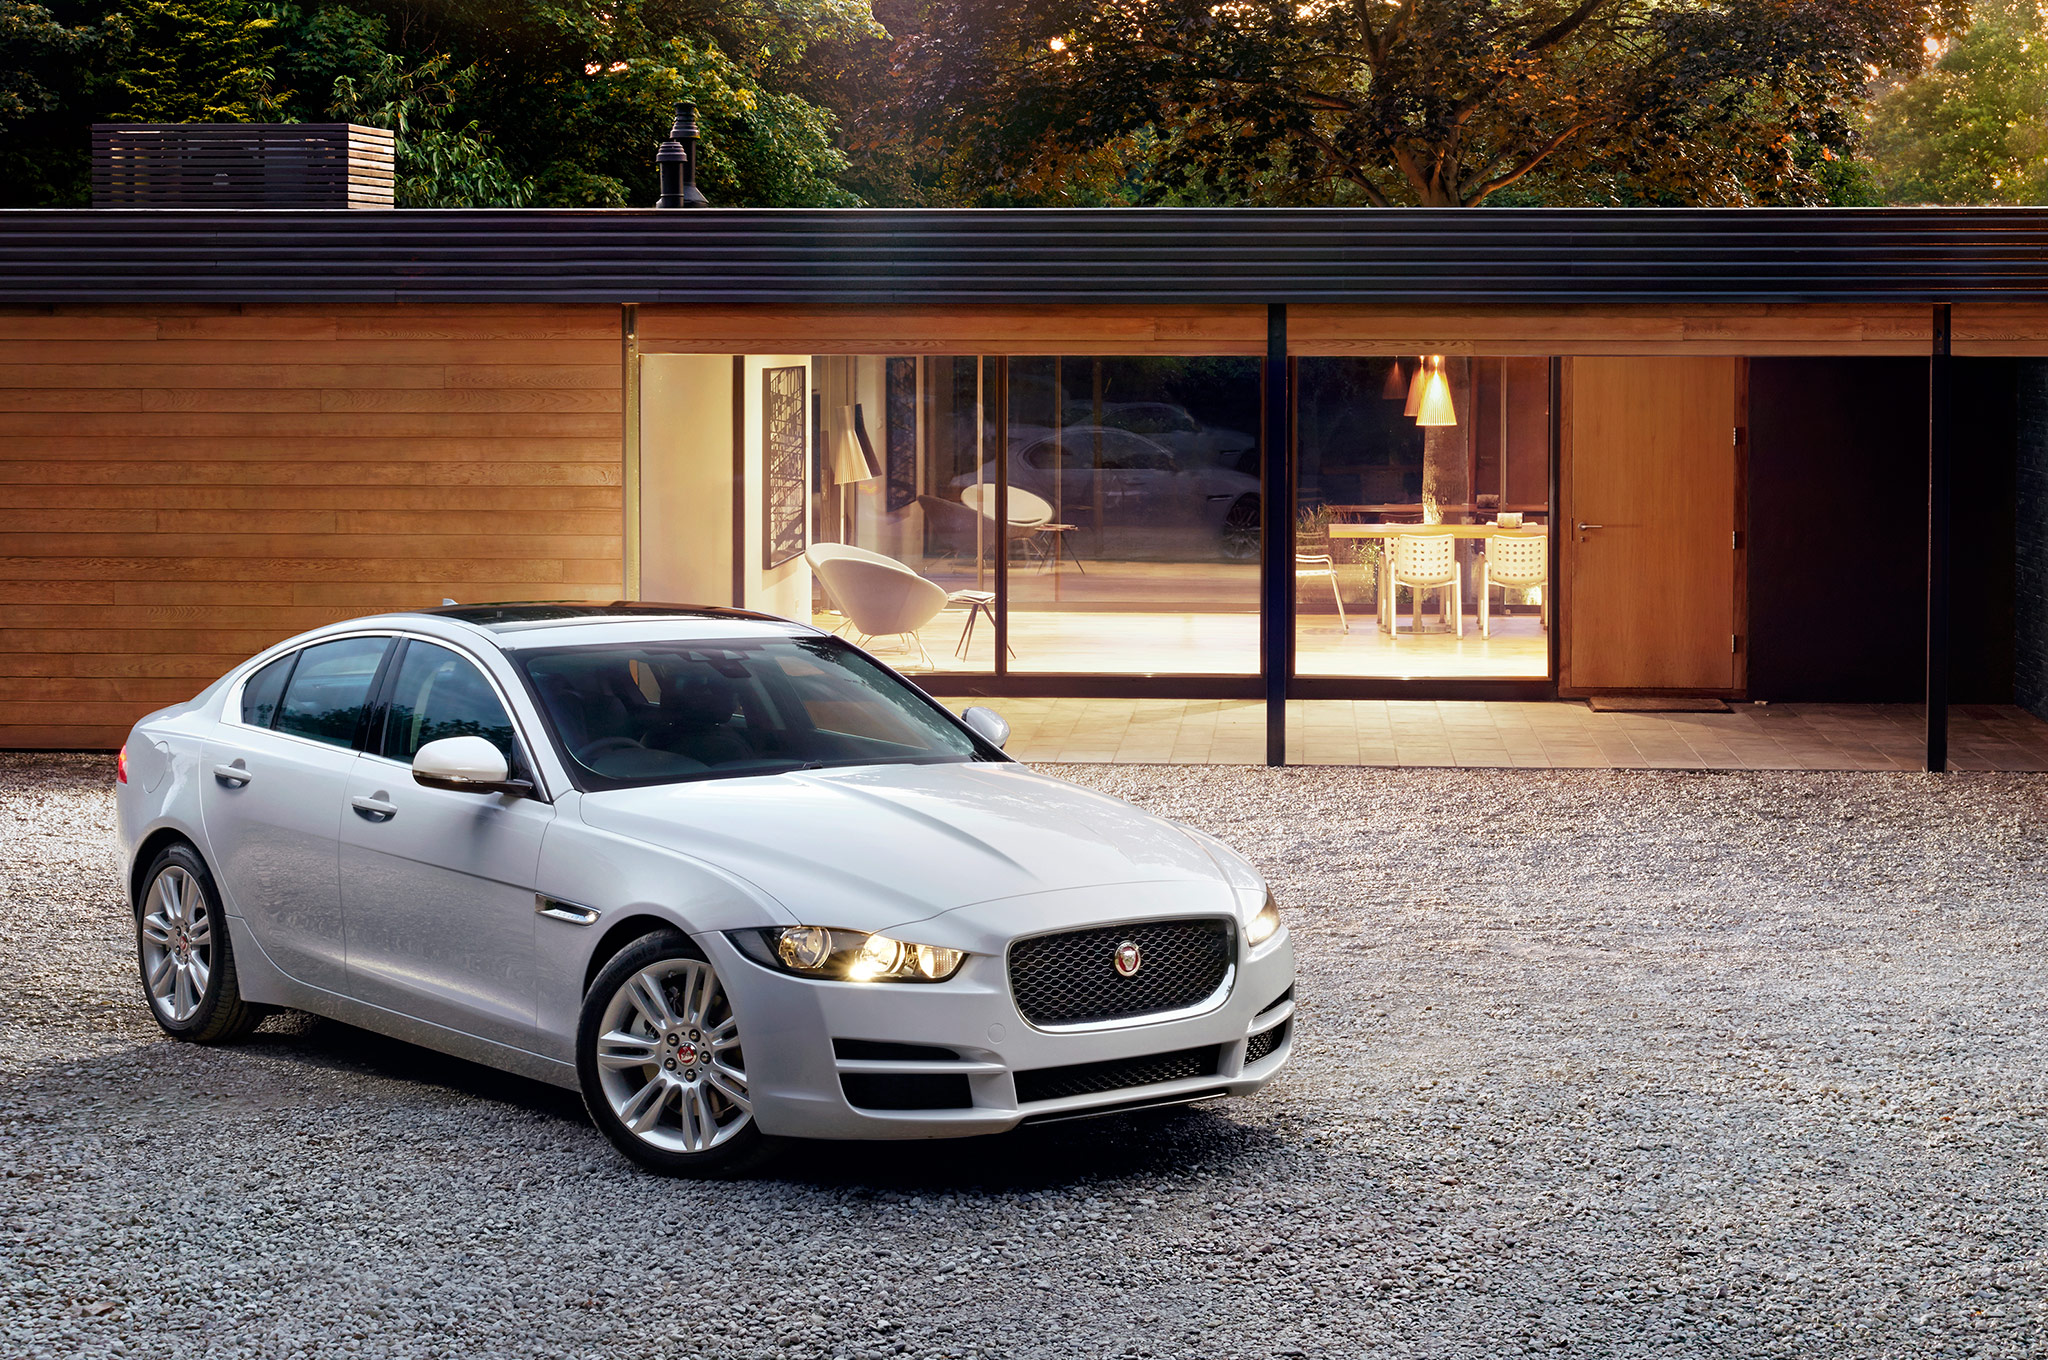 2016 Jaguar Xe White Preview (Photo 12 of 12)